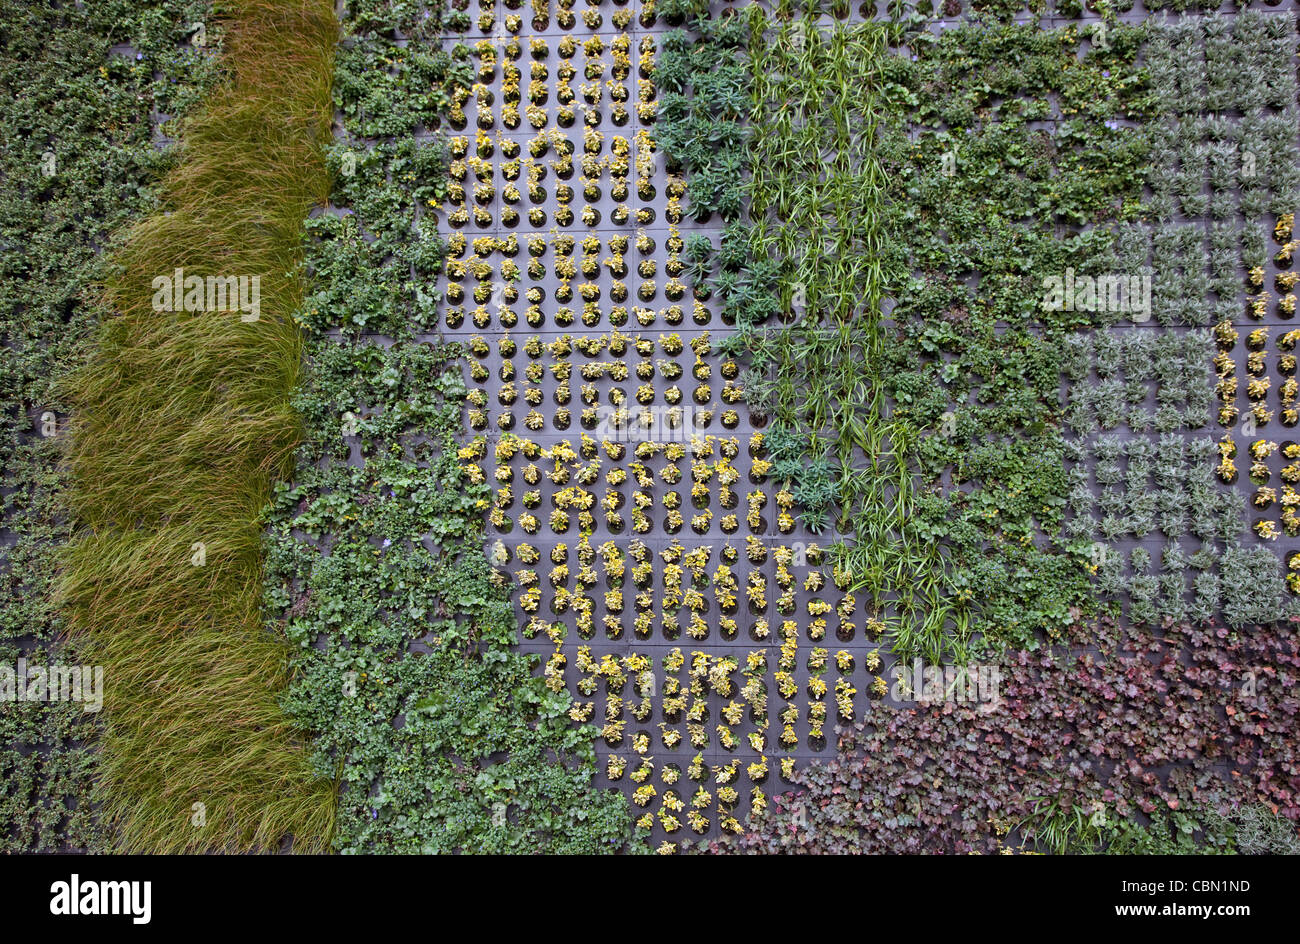 Vertical garden in Edgware Road, Central London to absorb traffic pollution - Stock Image